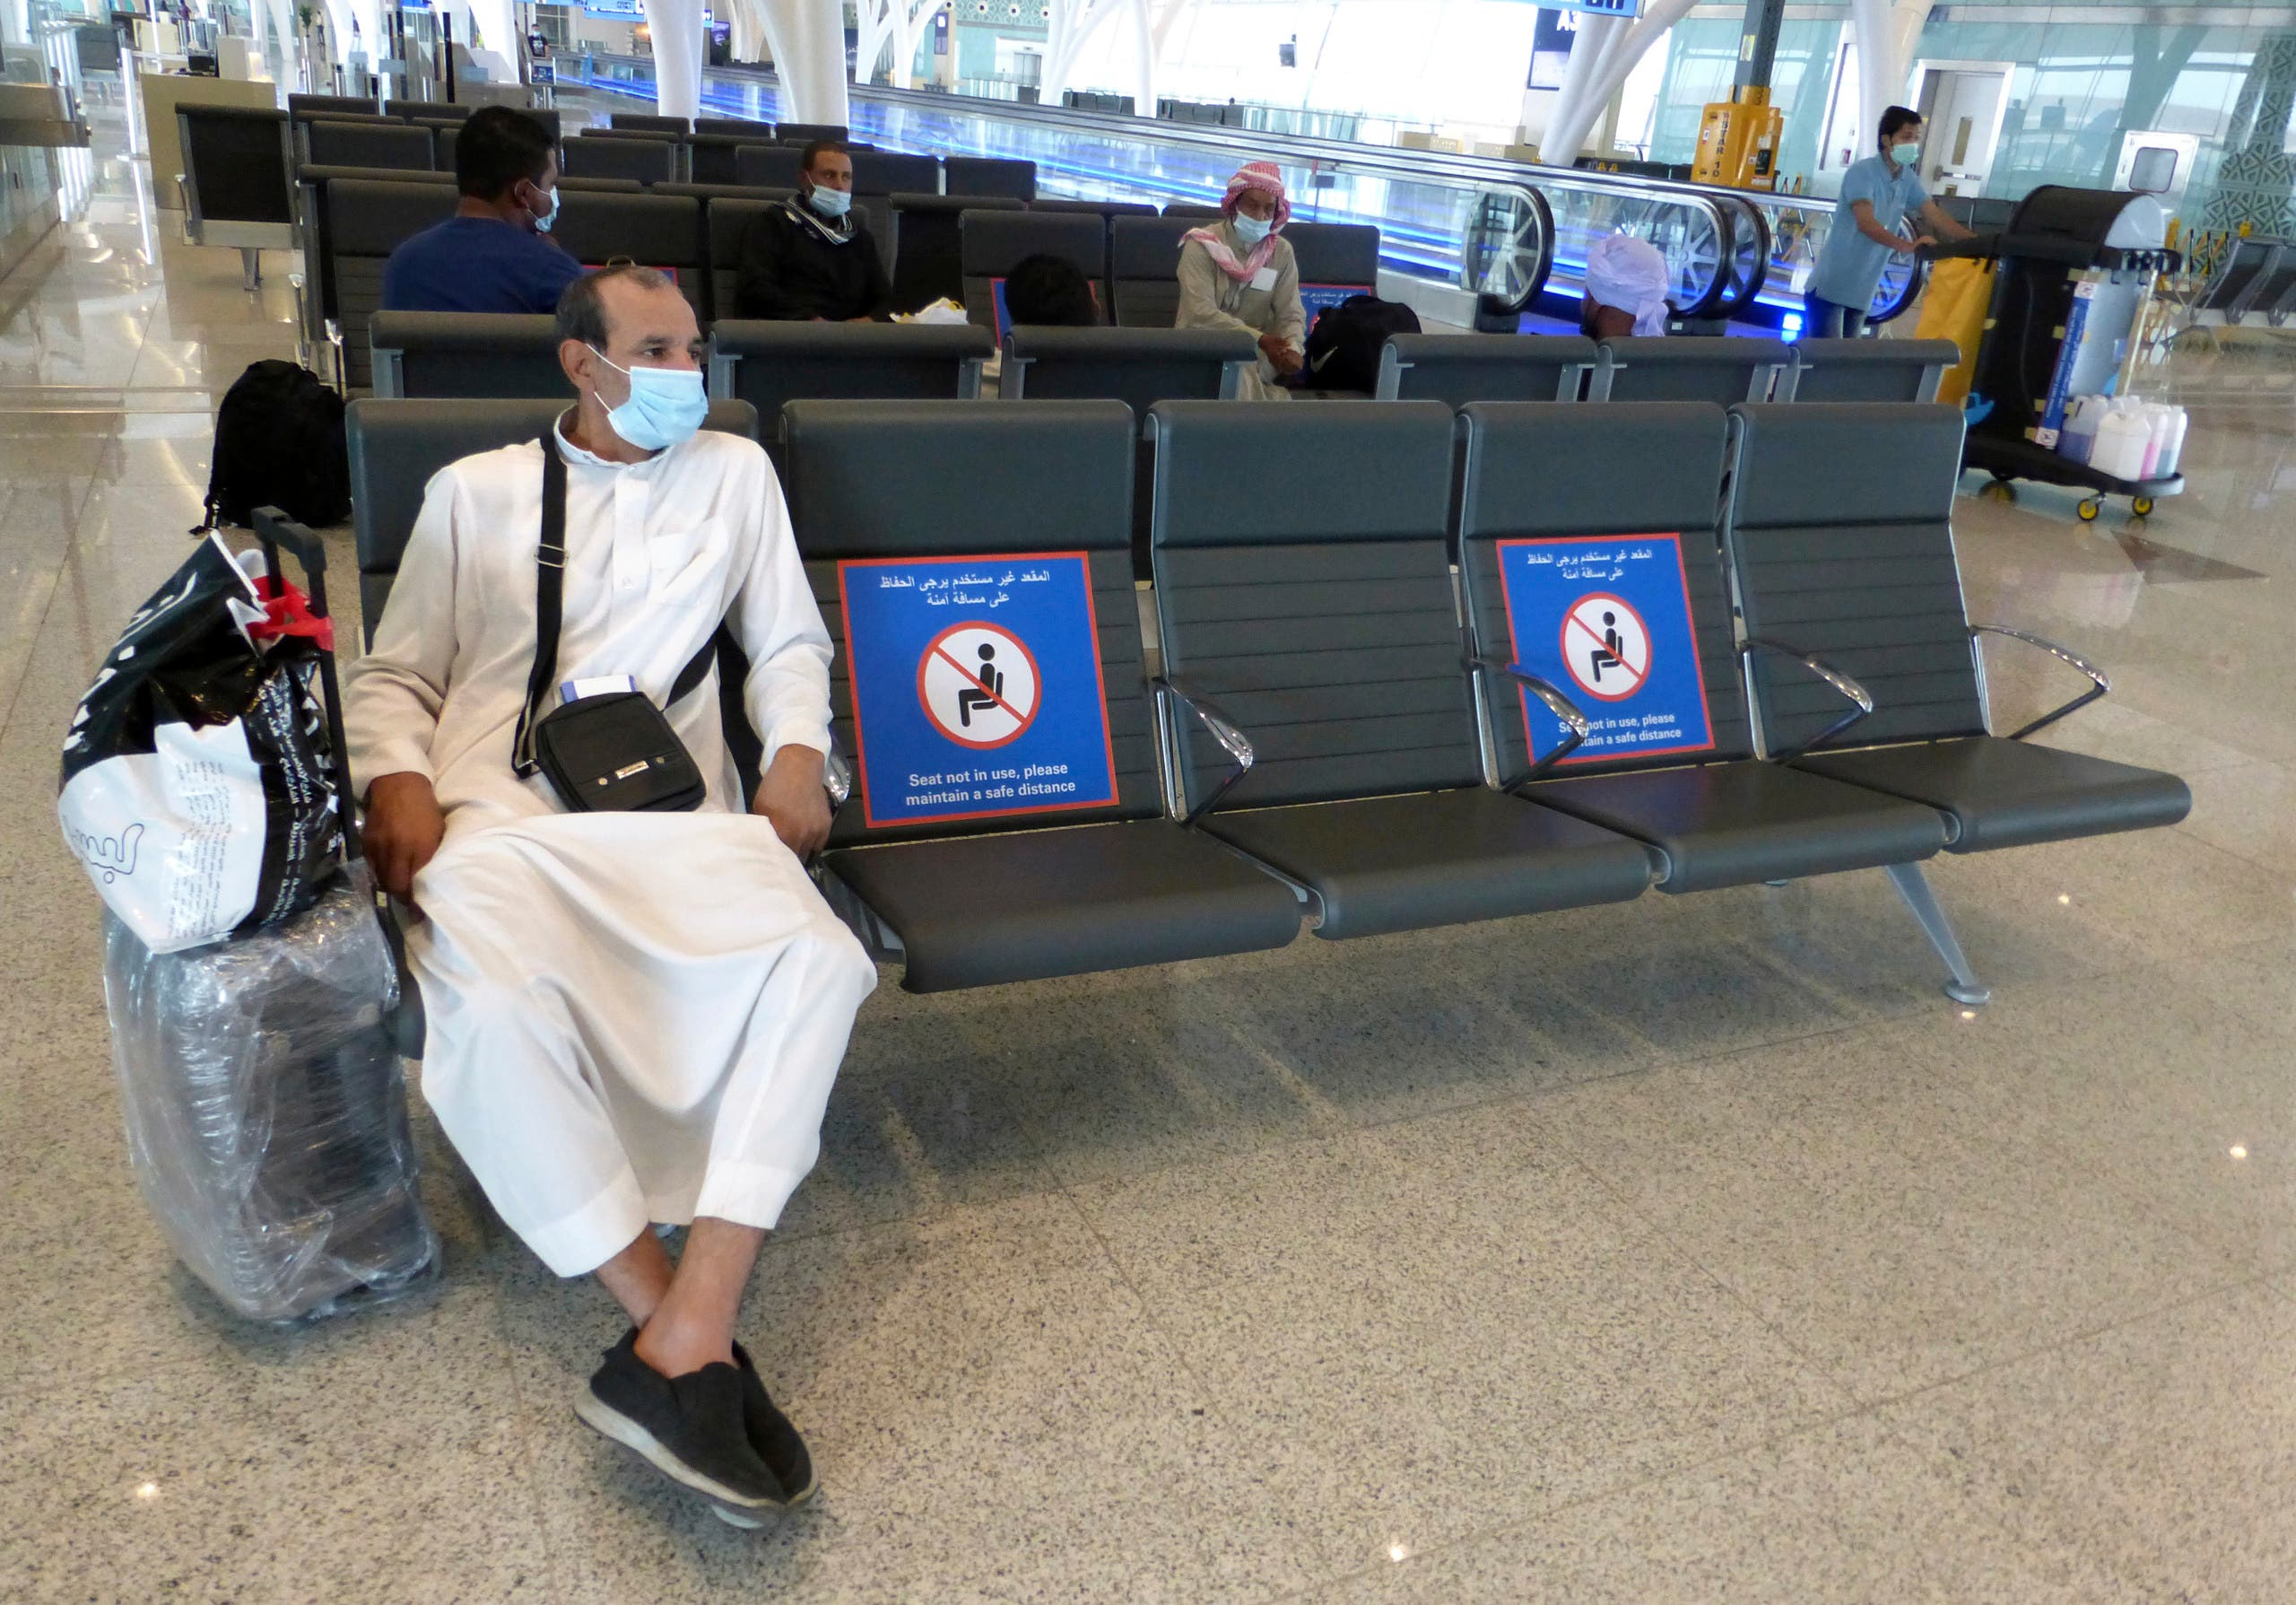 A passenger sits beside posters displaying social distancing restrictions as he waits for his flight at the King Abdulaziz International Airport. (File photo: AP)